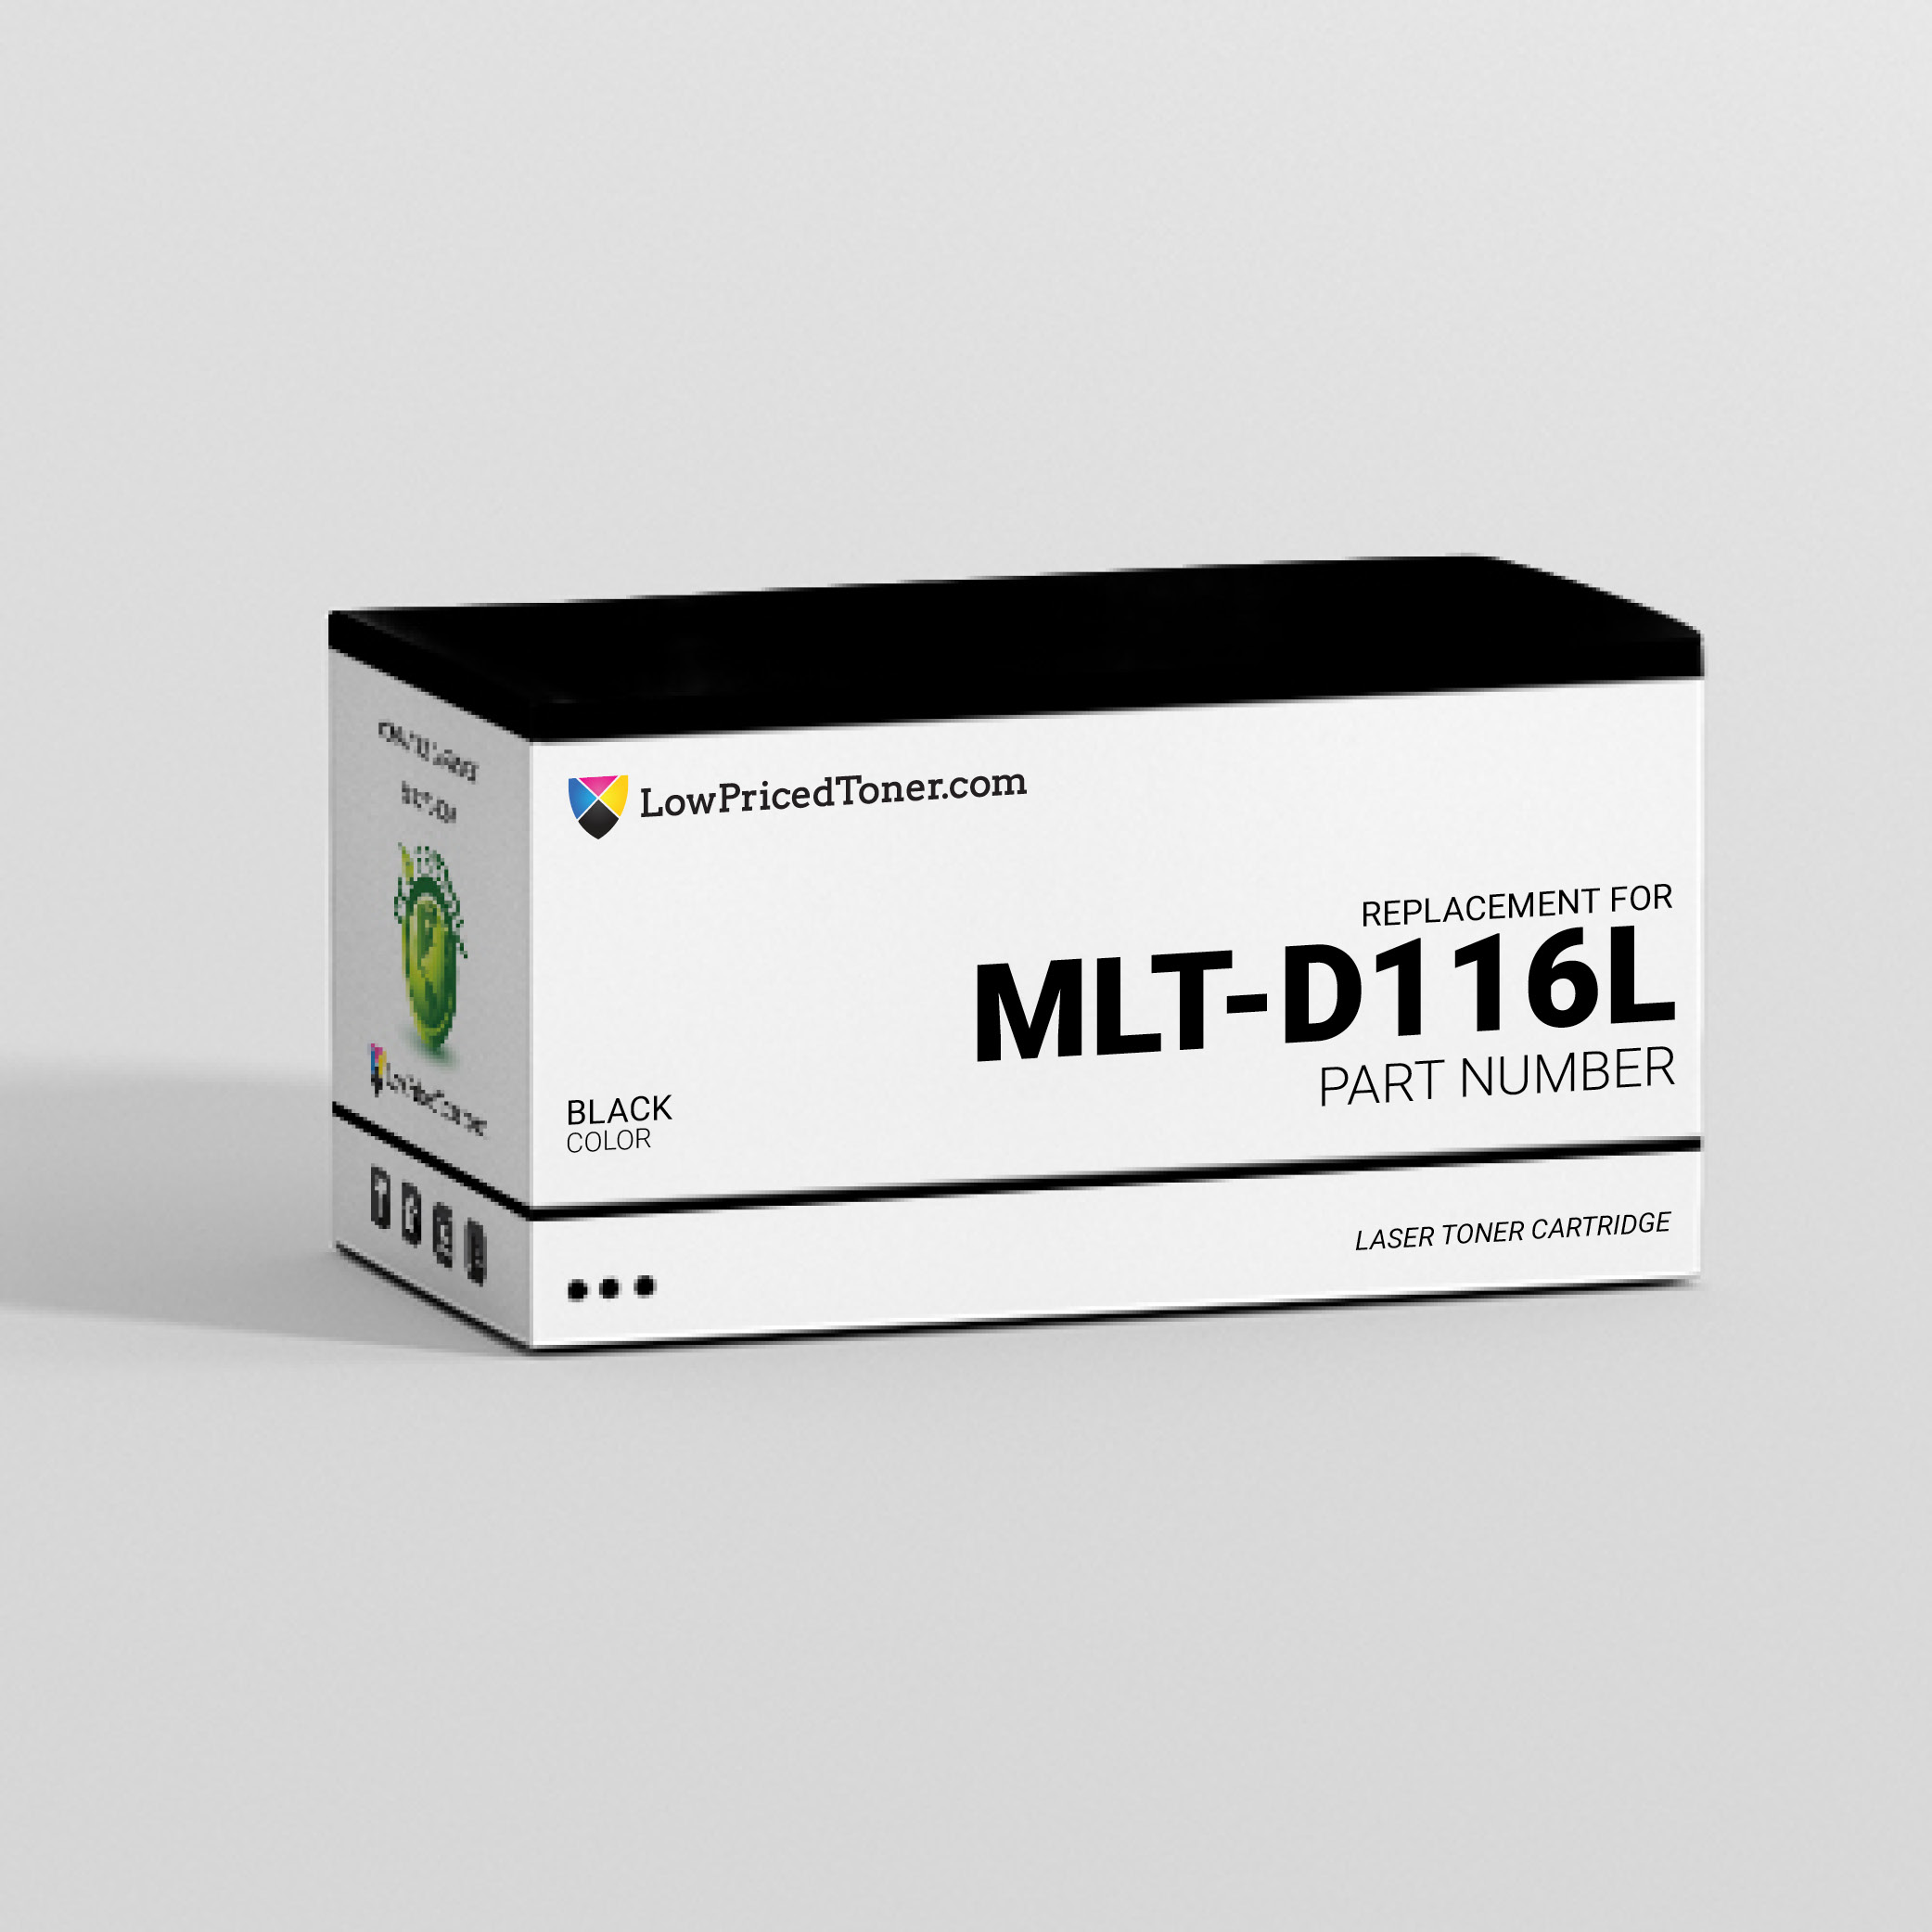 Samsung MLT-D116L Compatible Black Laser Toner Cartridge